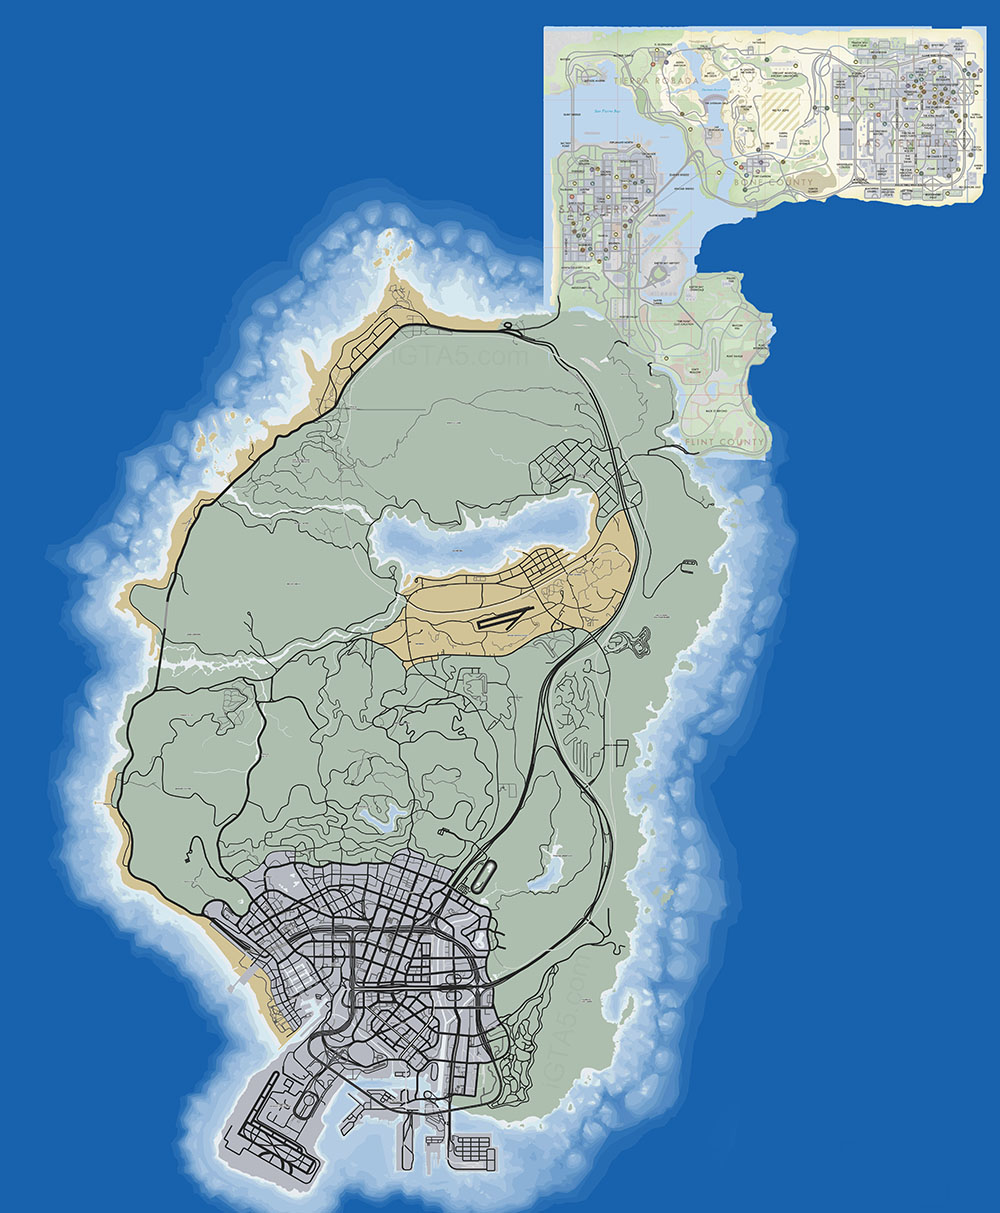 0_1480234534426_gtav-map-roadmap-huge.jpg